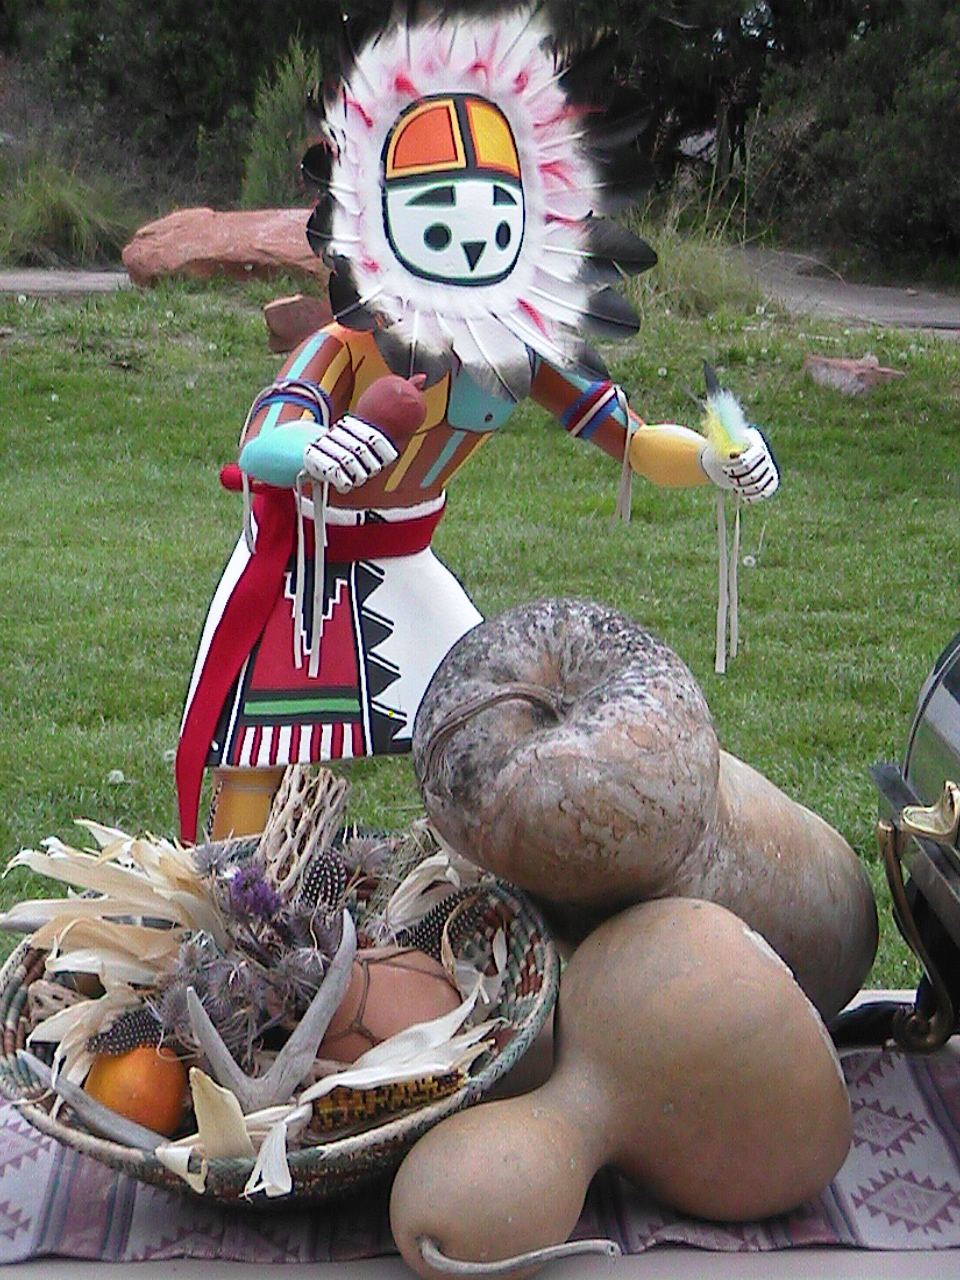 Native American Village, Kachina Doll Prop For Buffet, Image Provided By Show Stoppers